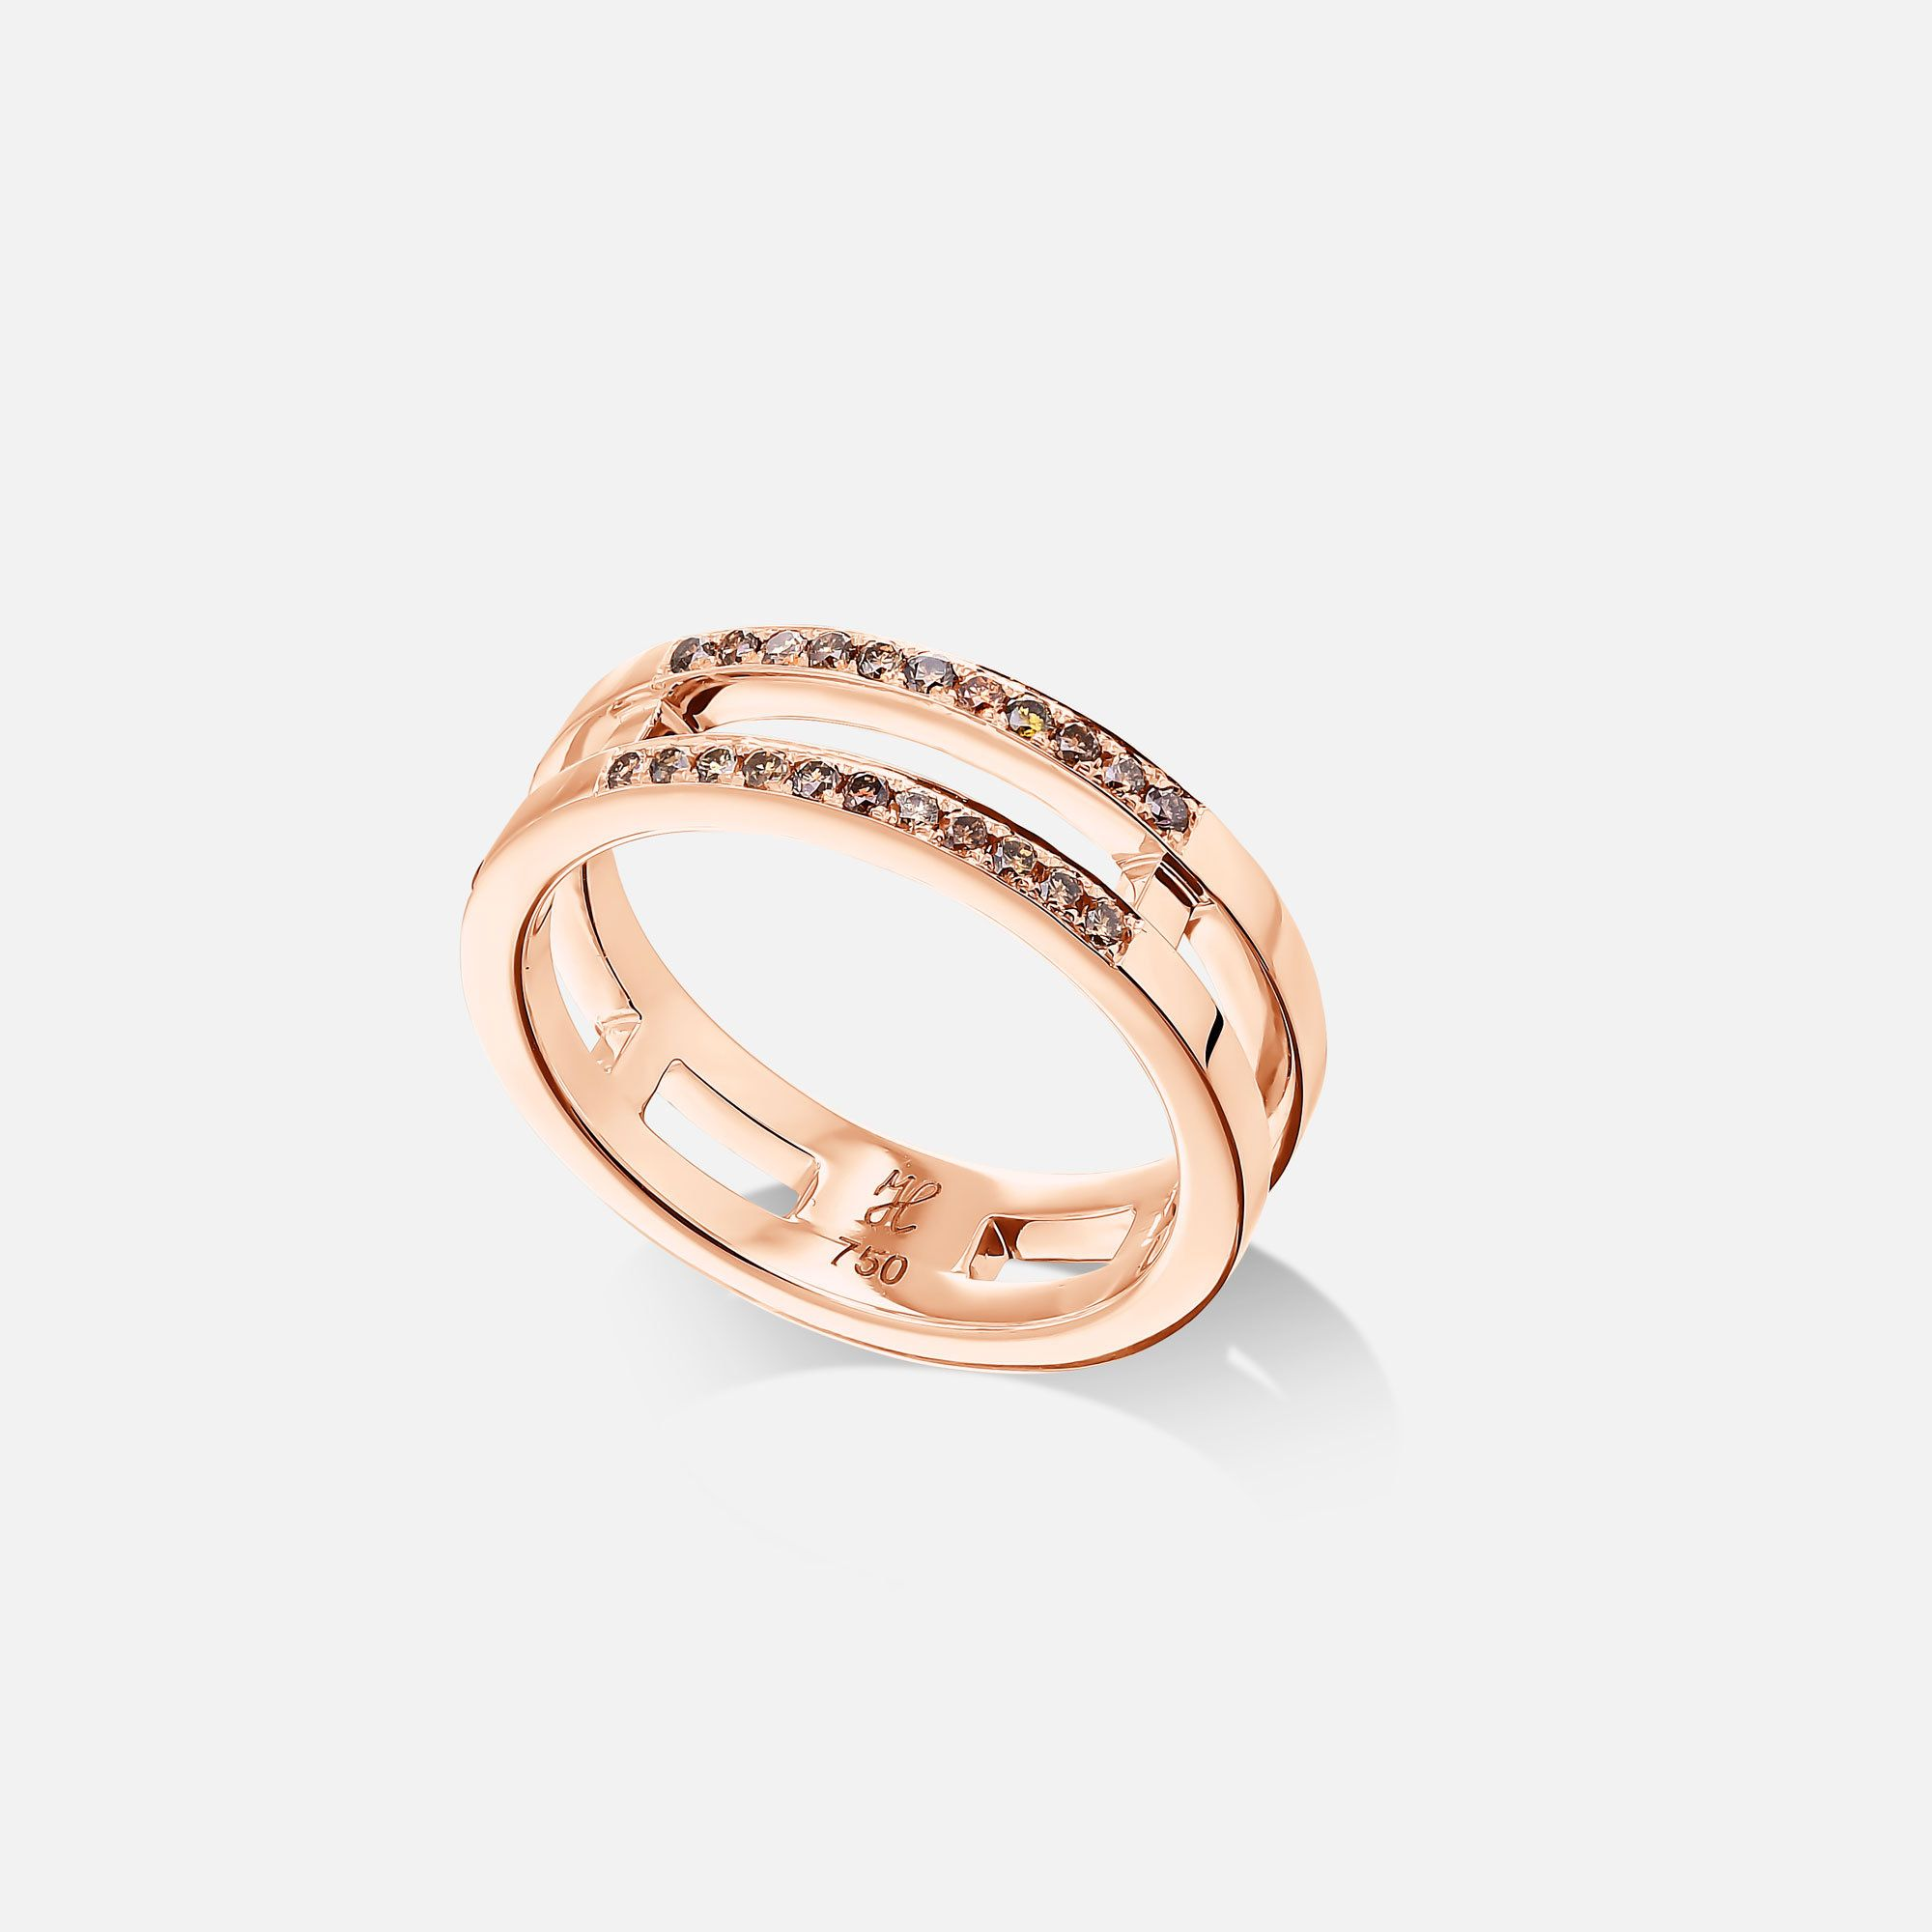 Rose Gold Wedding Band 18k Rose Gold Wedding Ring Solid Gold Thin Double Band Ring With Cognac In 2020 Rose Gold Diamond Band Cognac Diamonds Rose Gold Diamond Ring